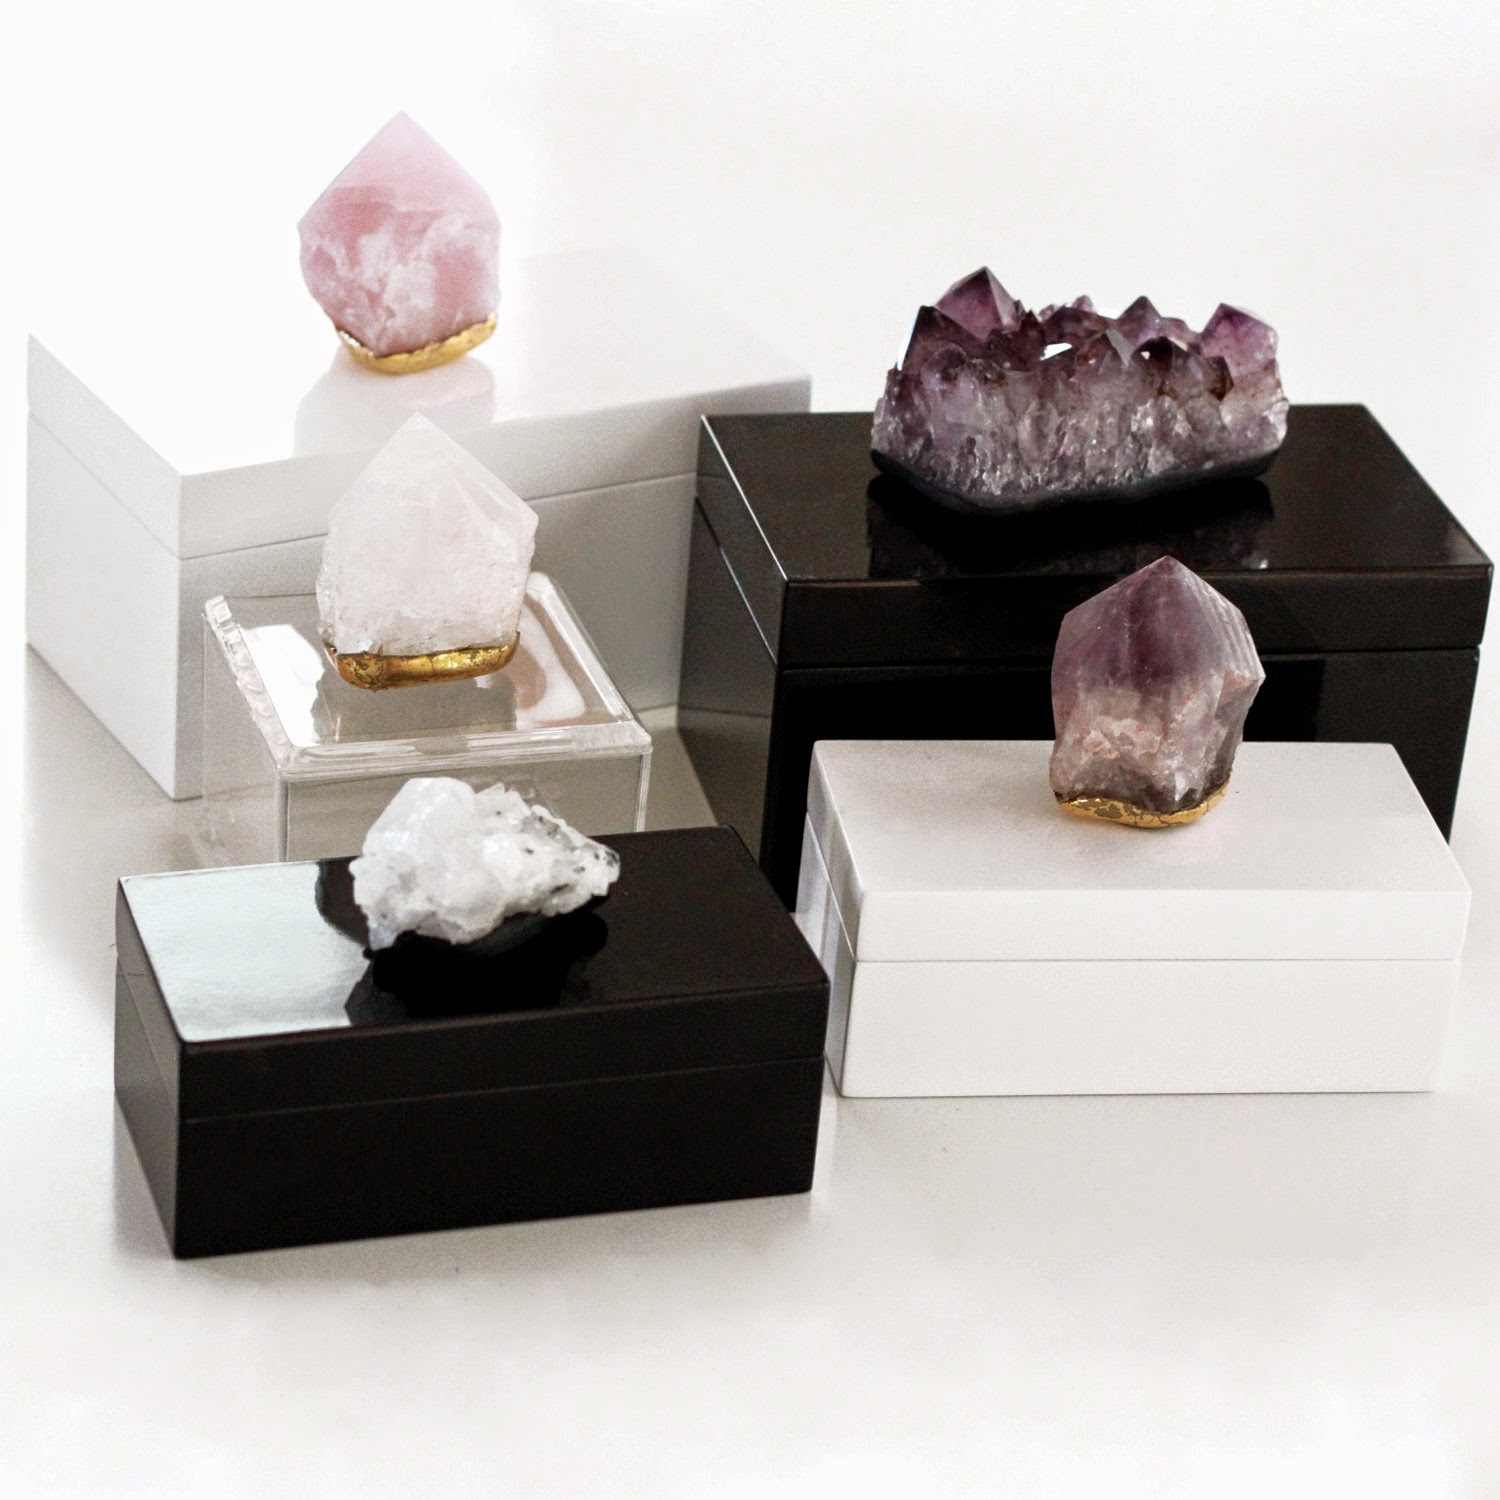 Quartz Crystal Jewelry Box Quartz Crystal Jewellery Box